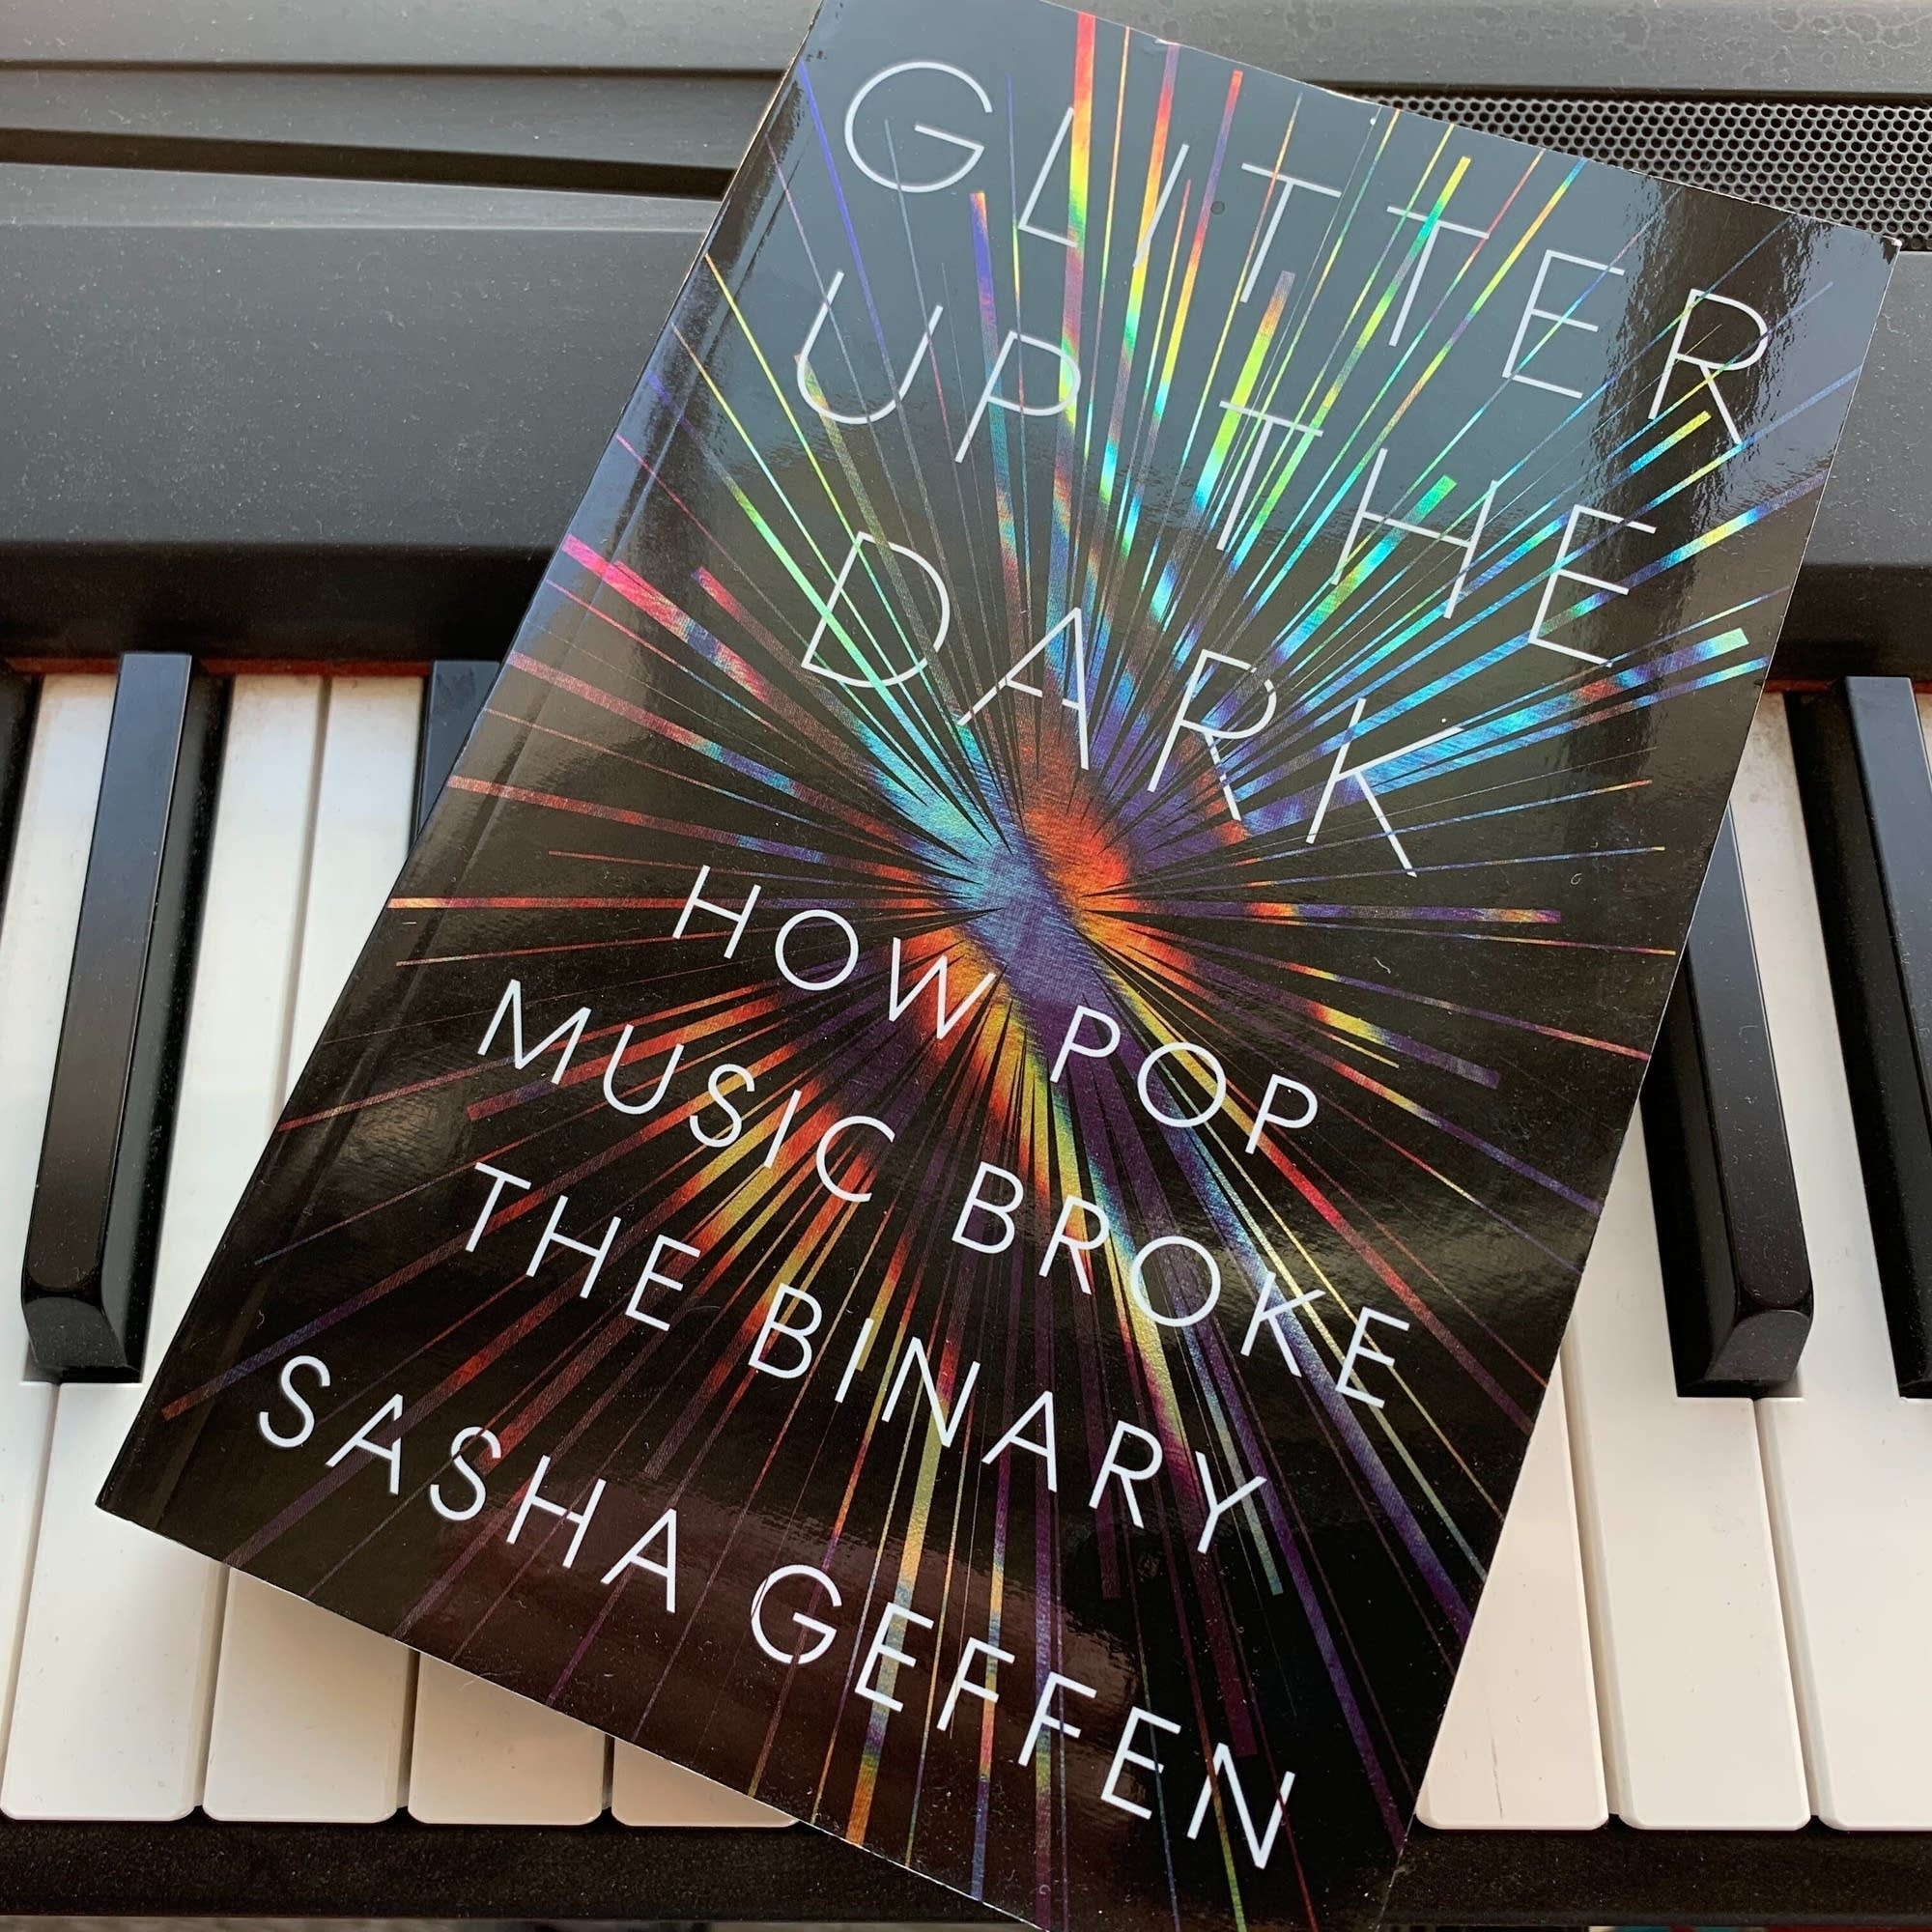 Sasha Geffen's 'Glitter Up the Dark.'